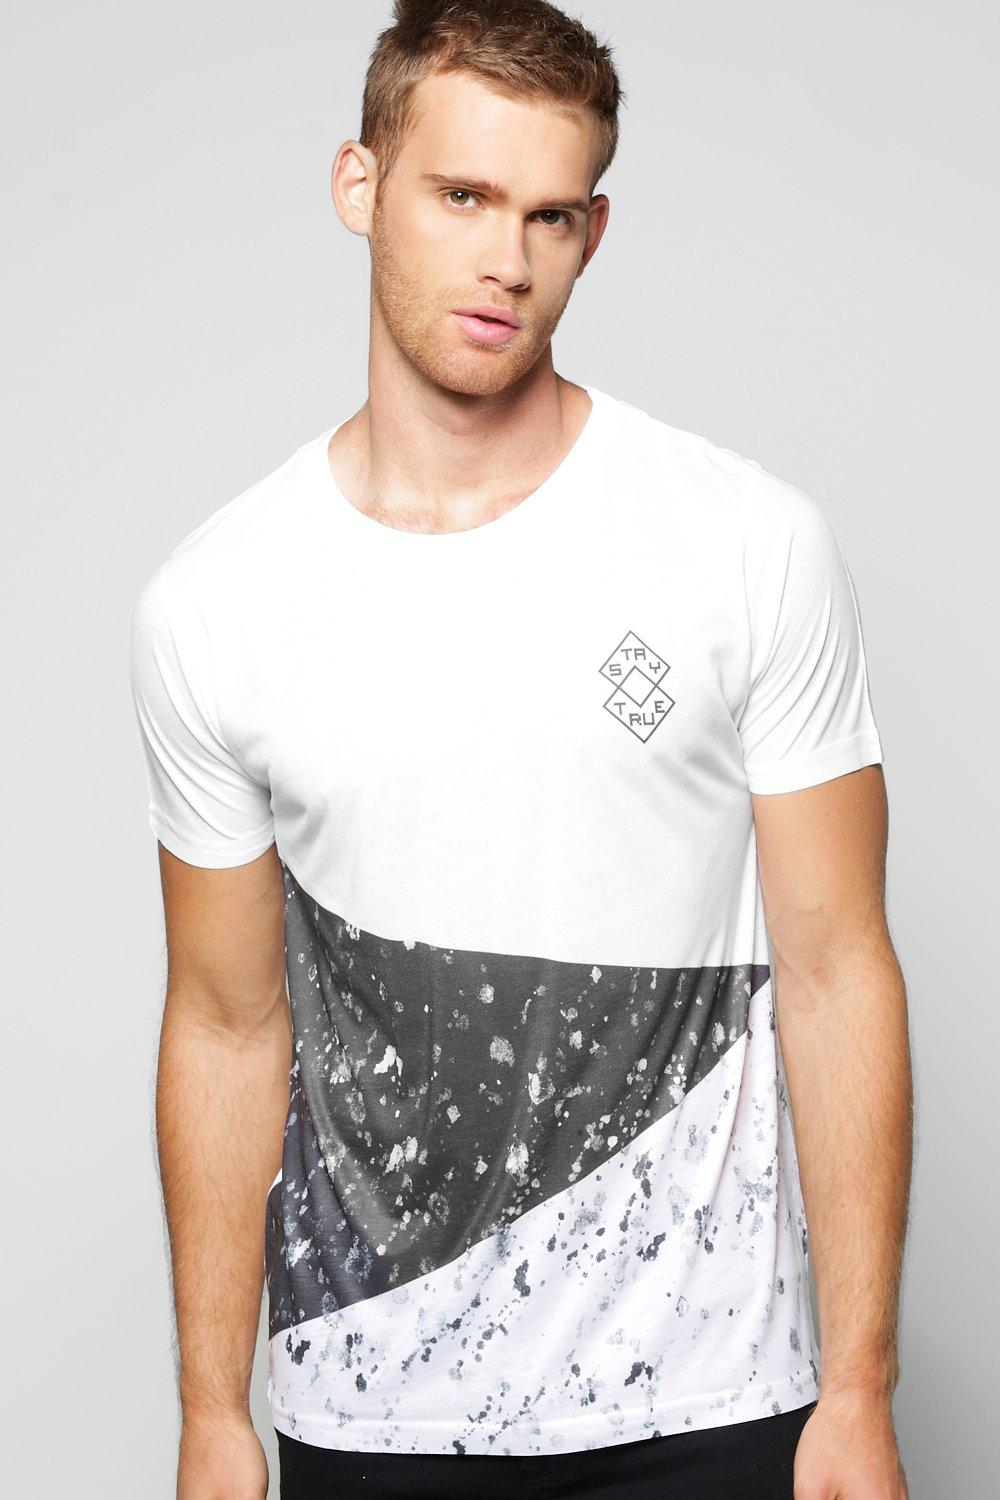 Spliced Splatter Sublimation T Shirt